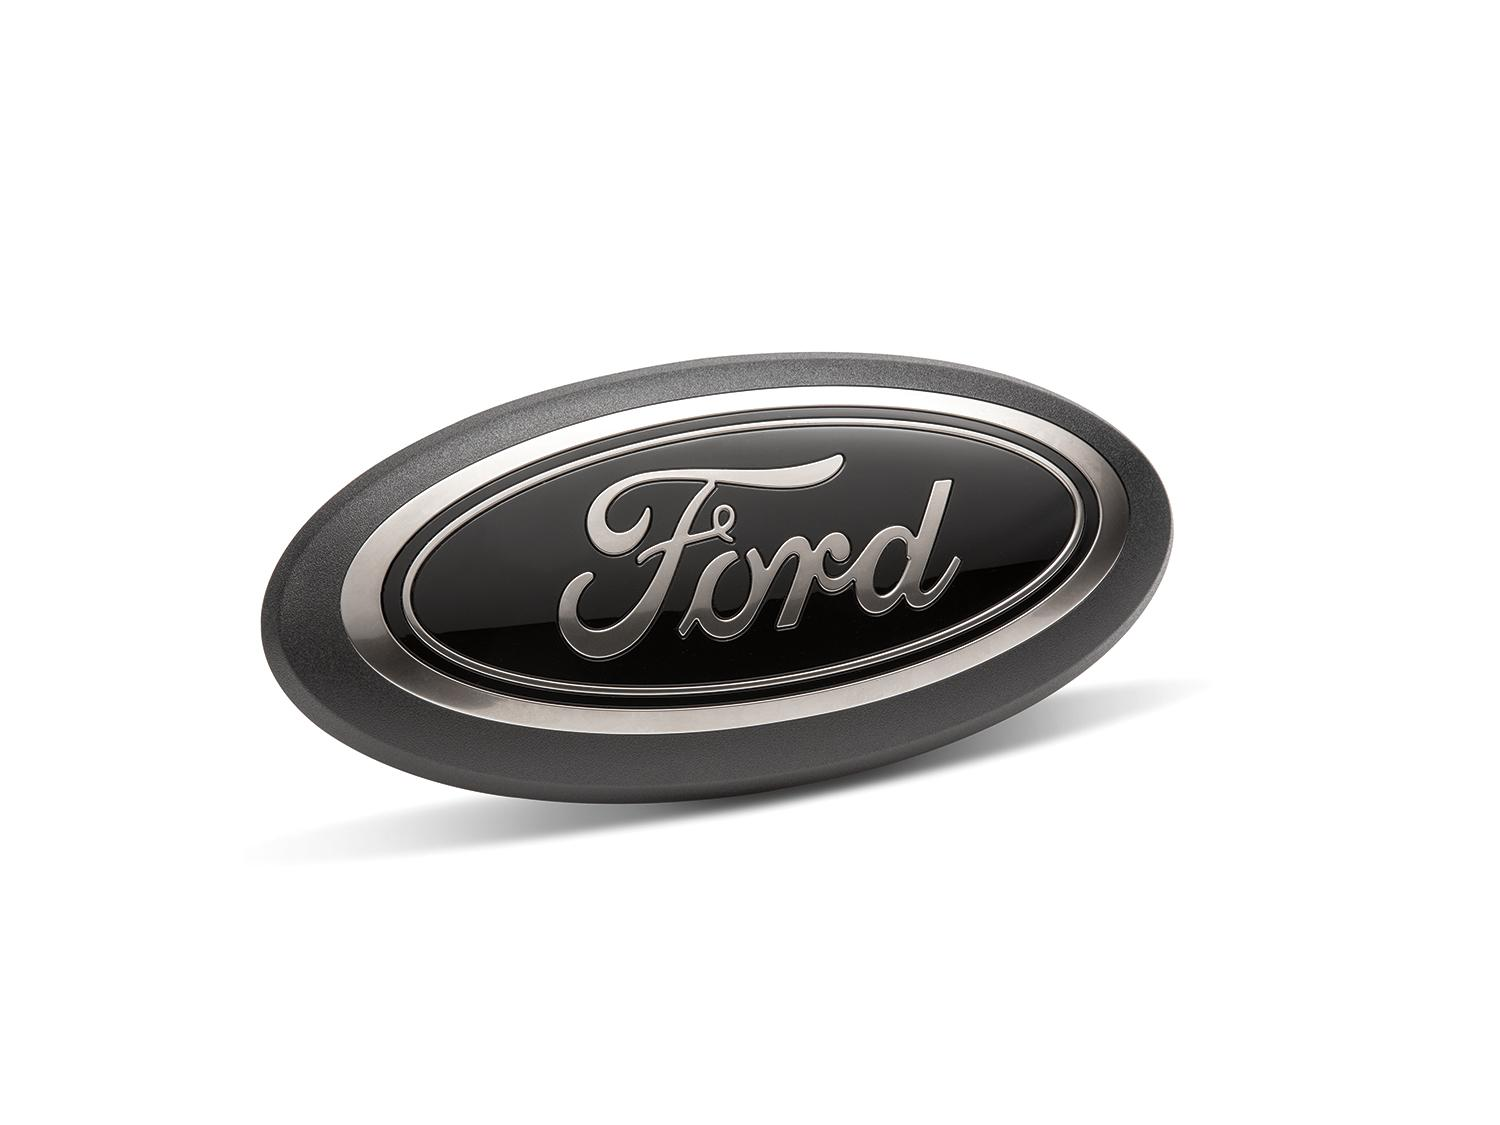 Ford Oval Emblem, Smoke Chrome and Black Oval